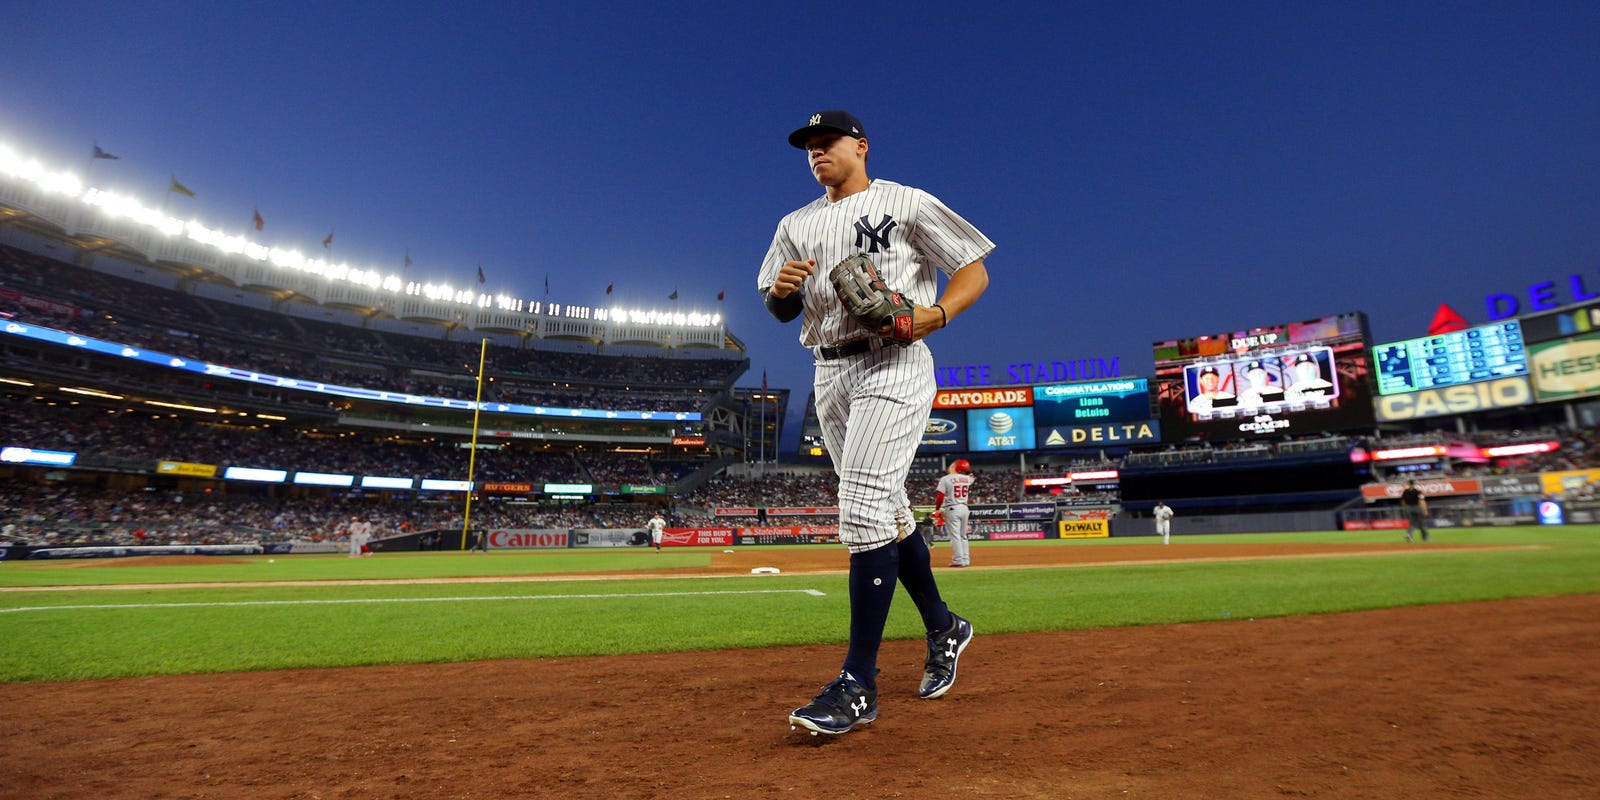 6 things you need to know about Yankees star Aaron Judge